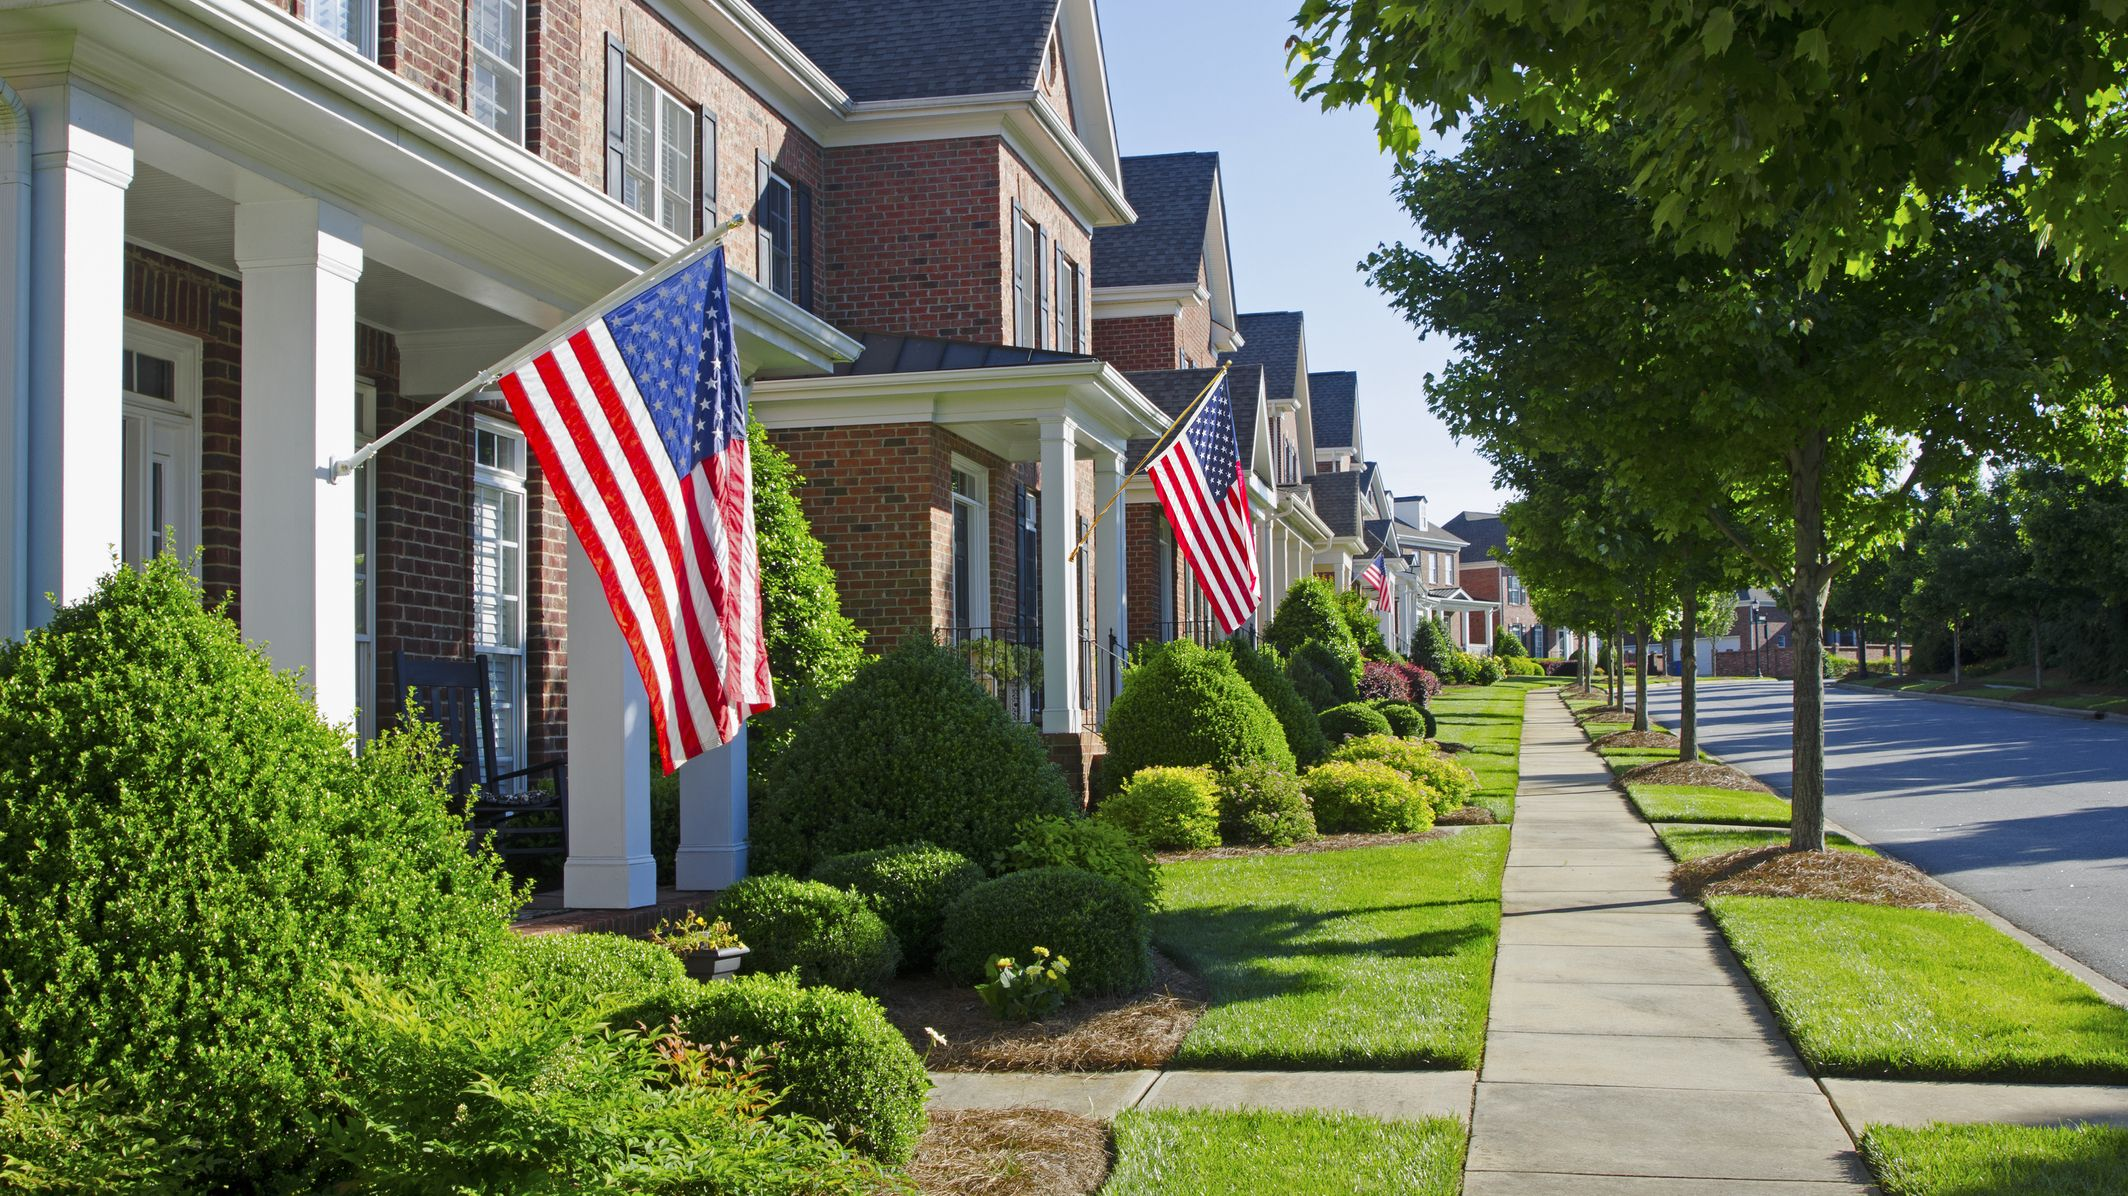 13 Rules for Displaying the American Flag